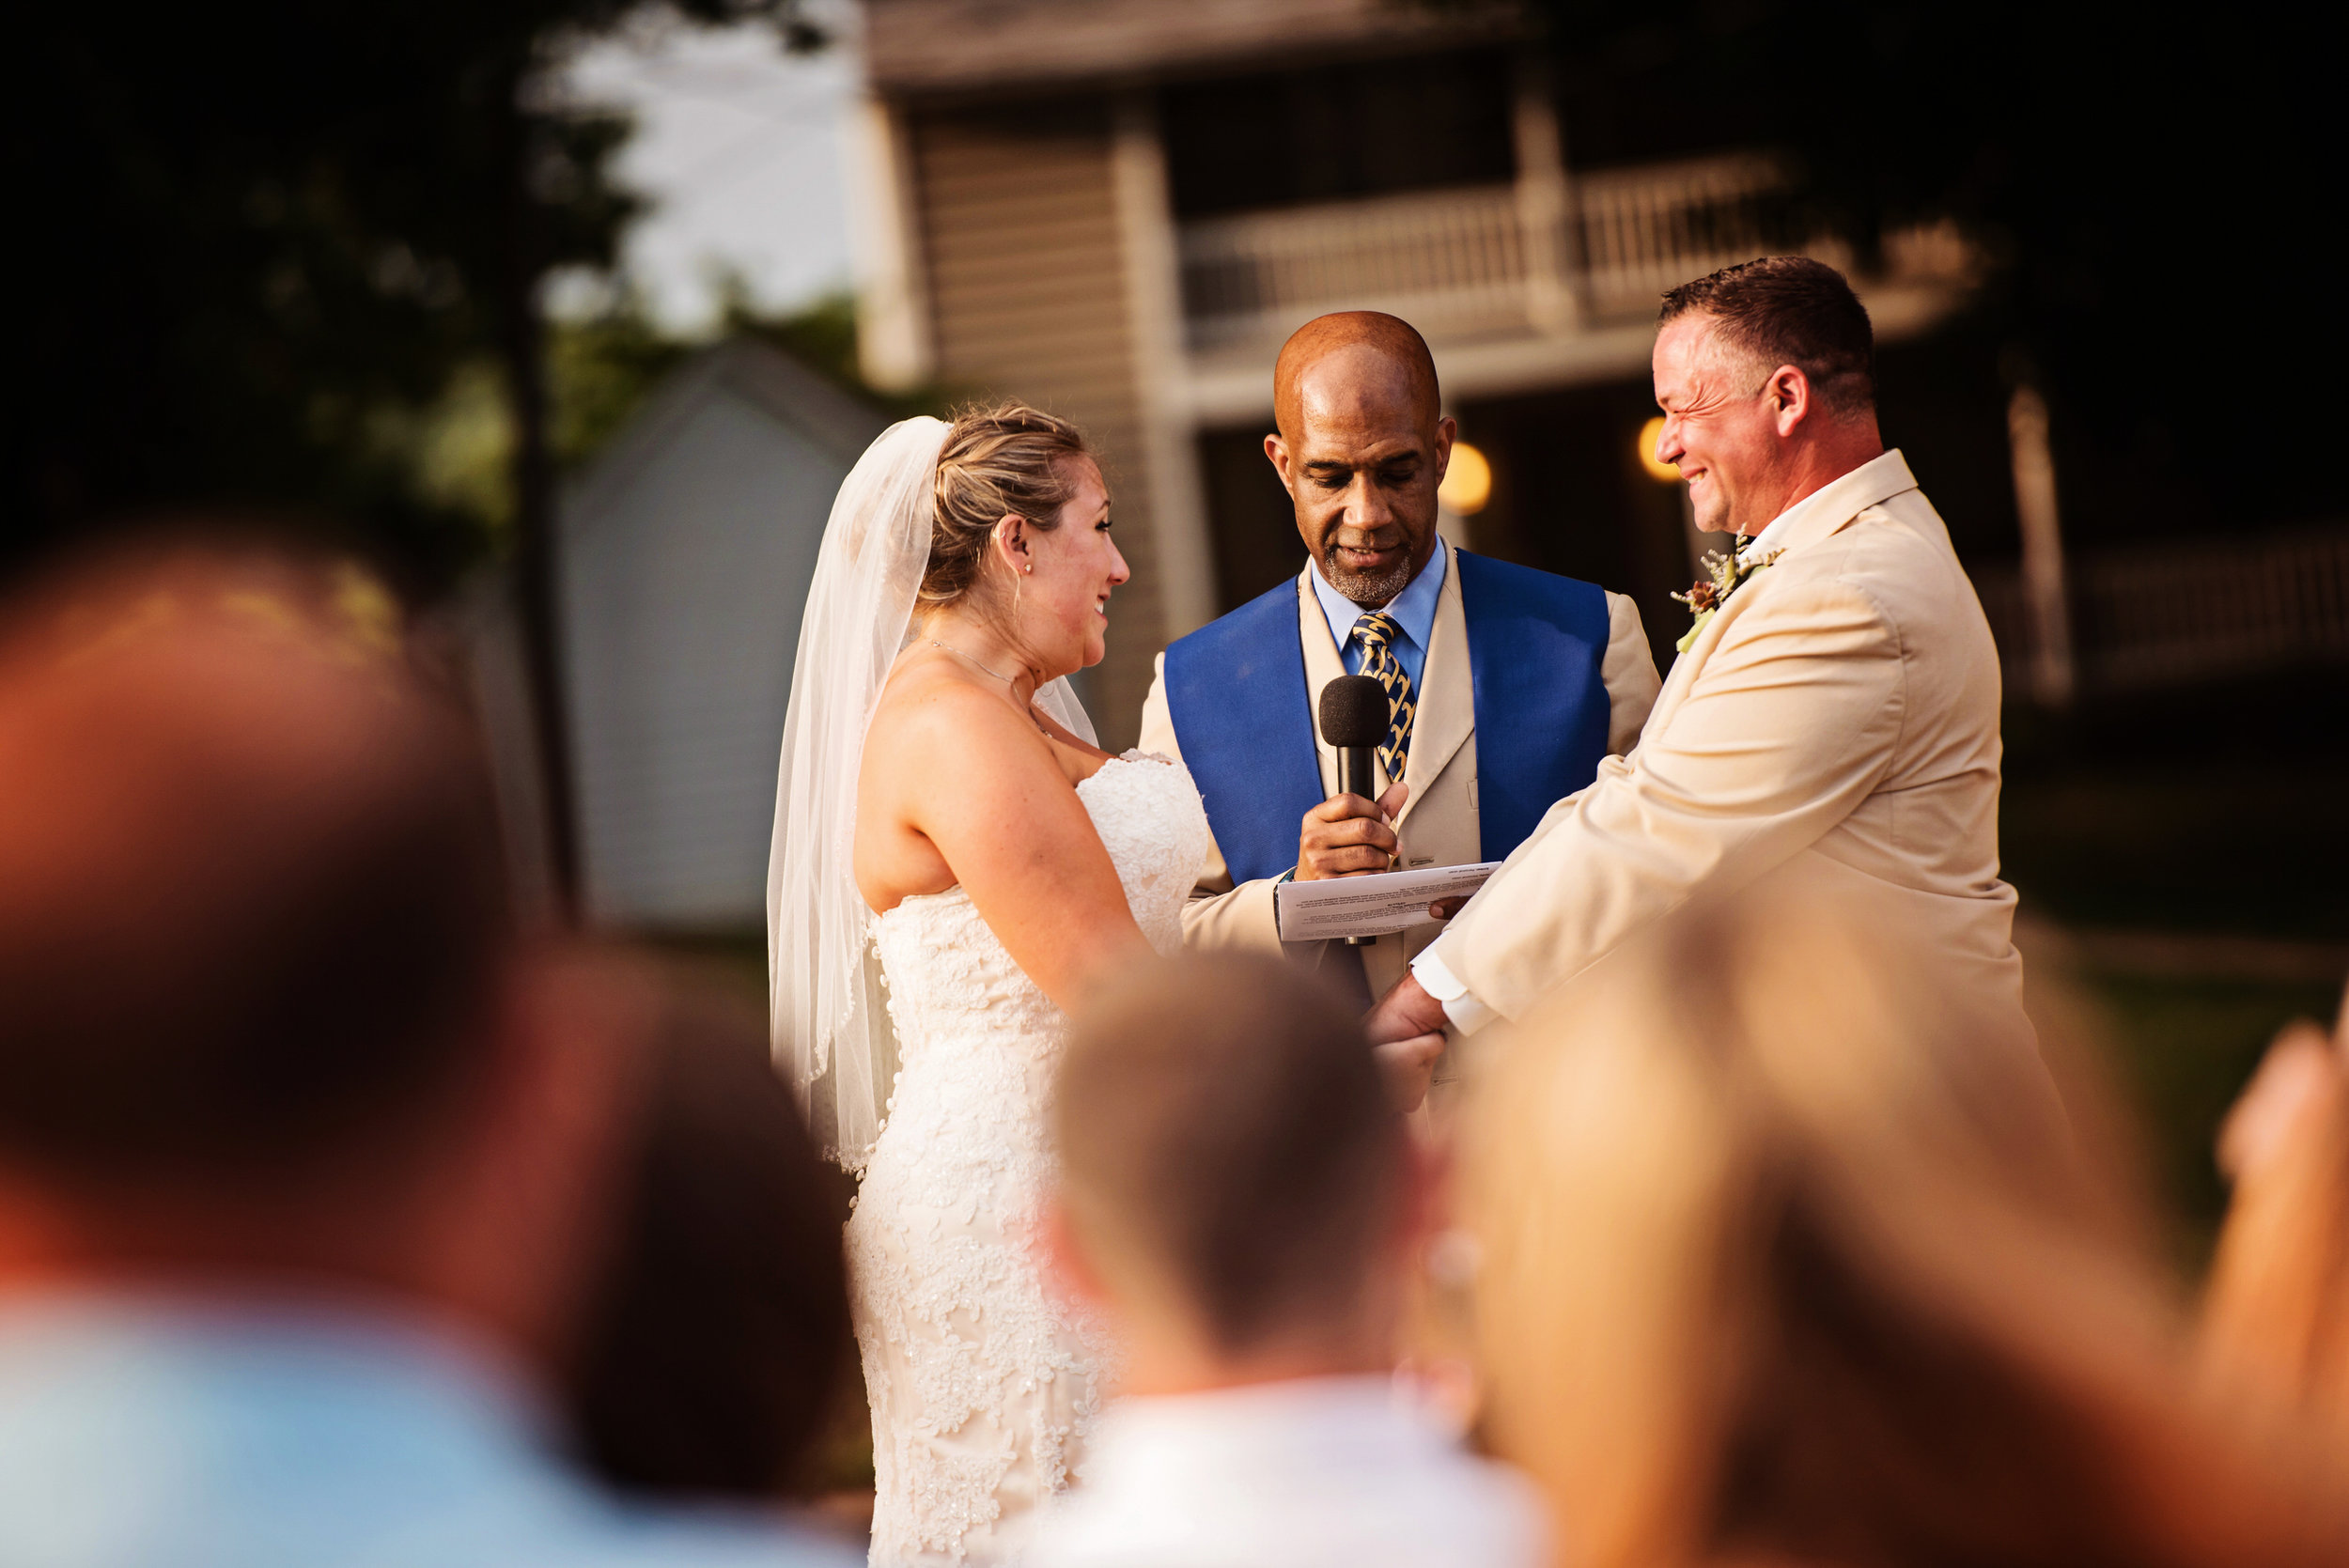 LiganoreWineryWedding-Amber&Andy-Ceremony-84.jpg